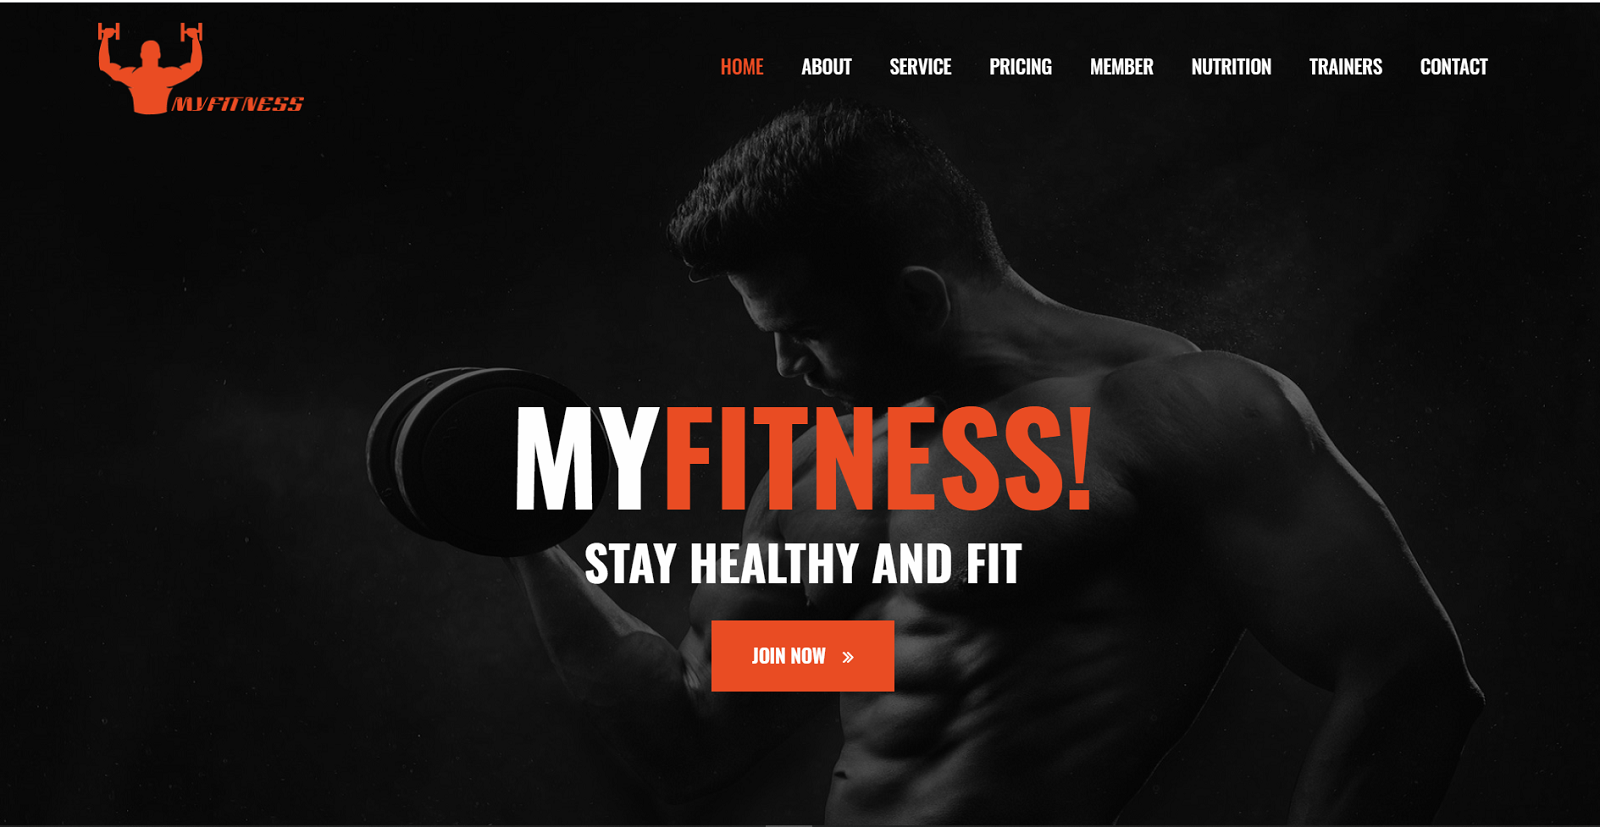 MyFitness - Gym Landing Page Template